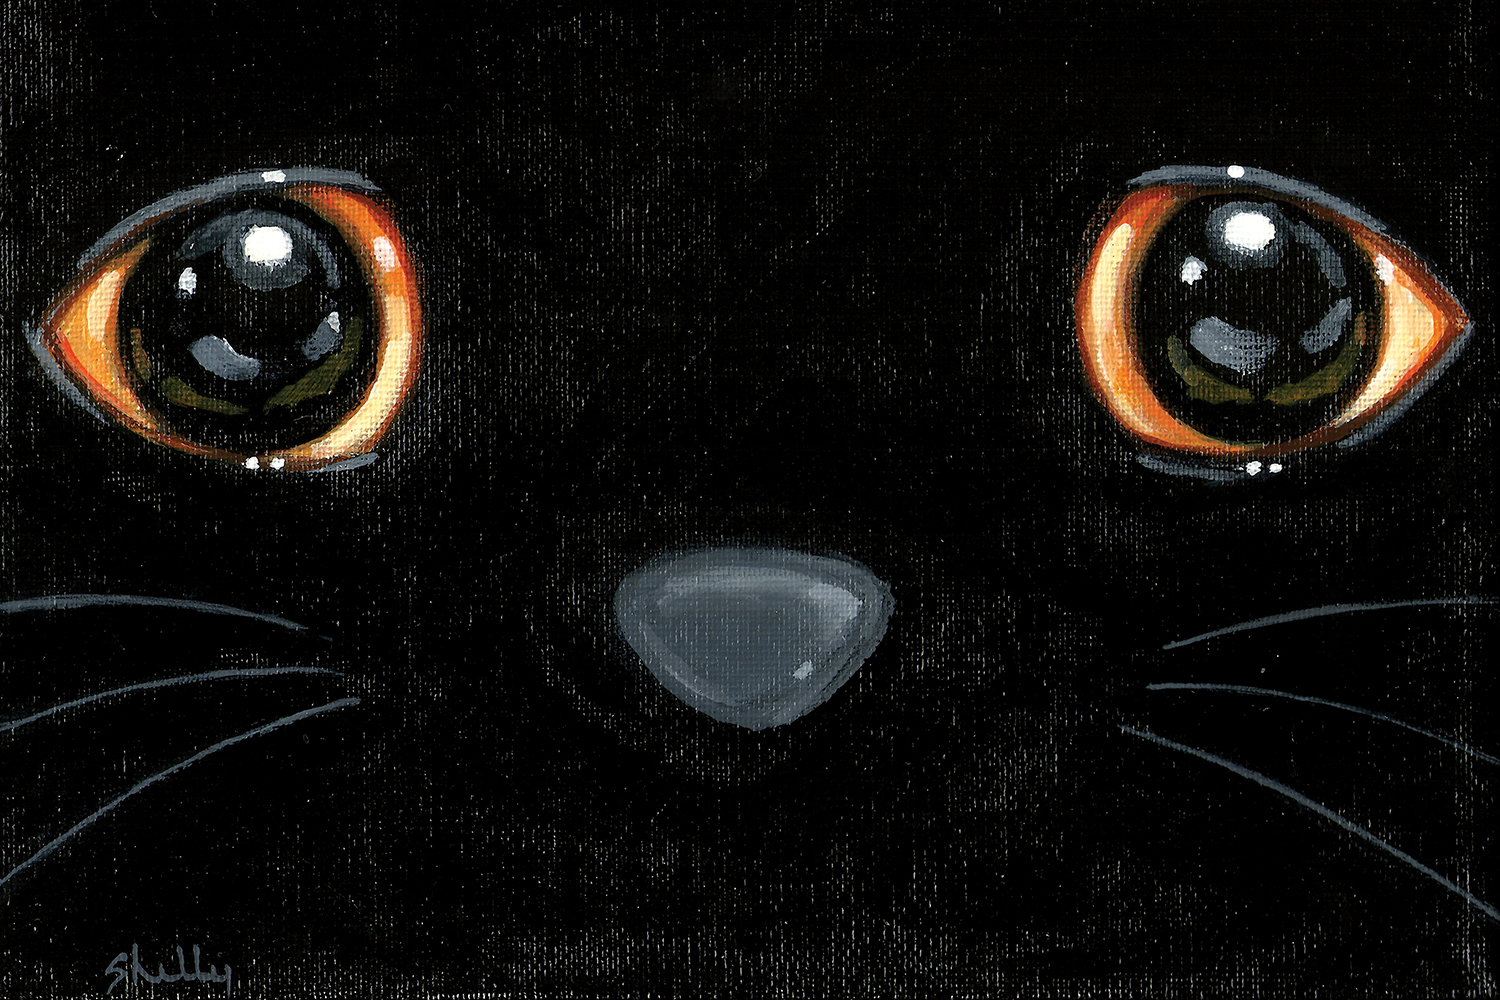 close up of a black cat's face showing just eyes, nose and whiskers